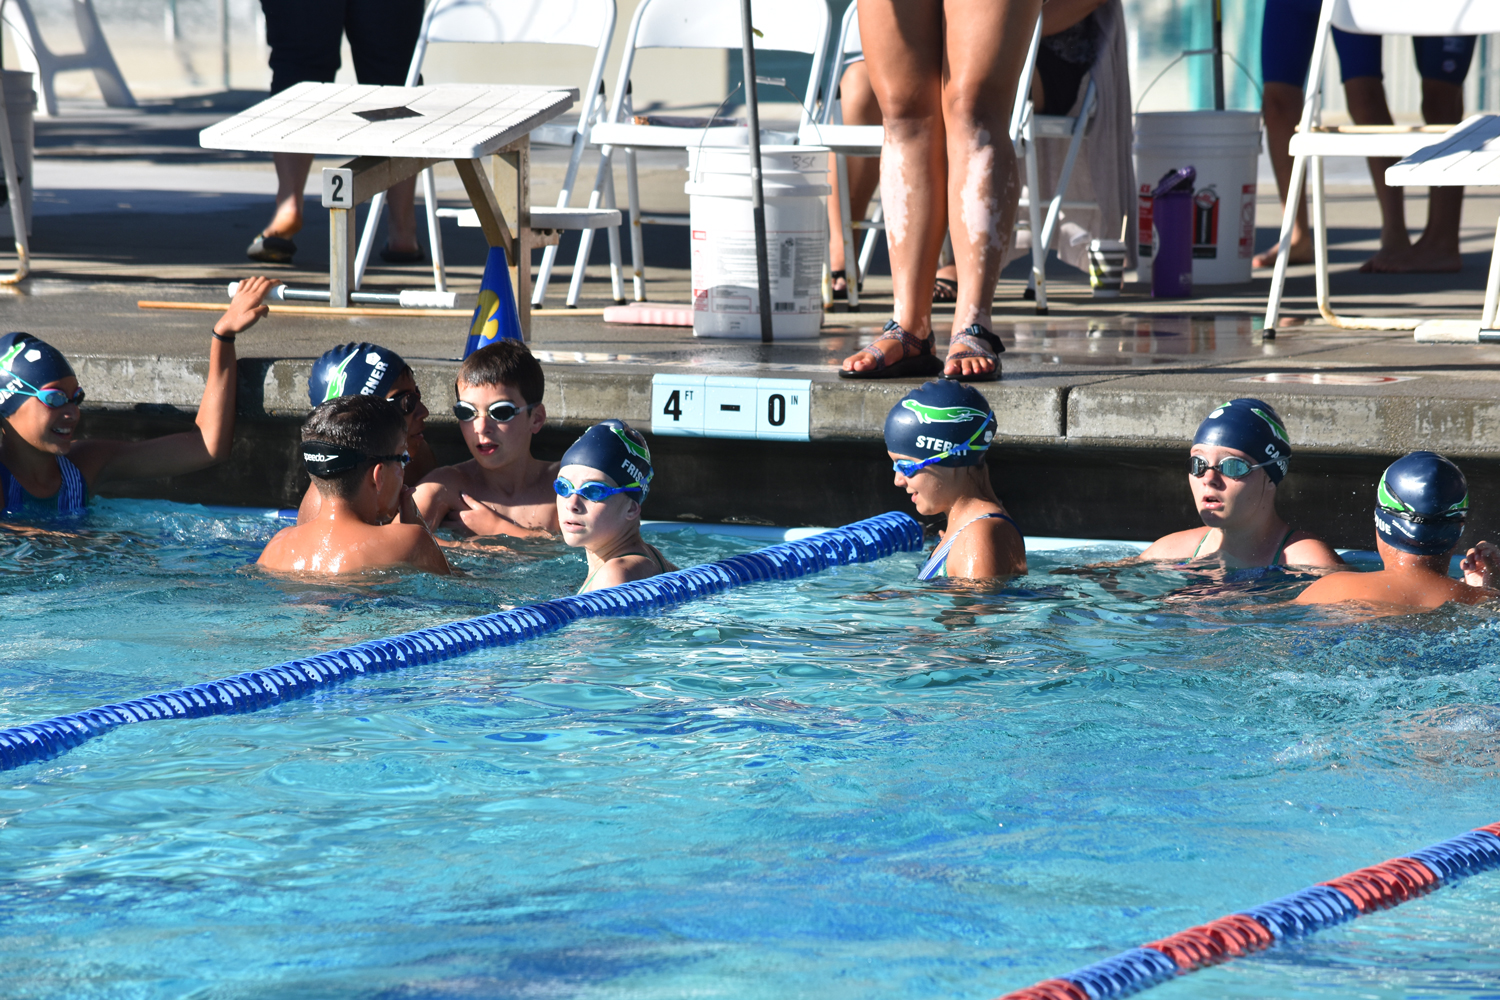 Otters-warming-up-at-the-Benicia-meet